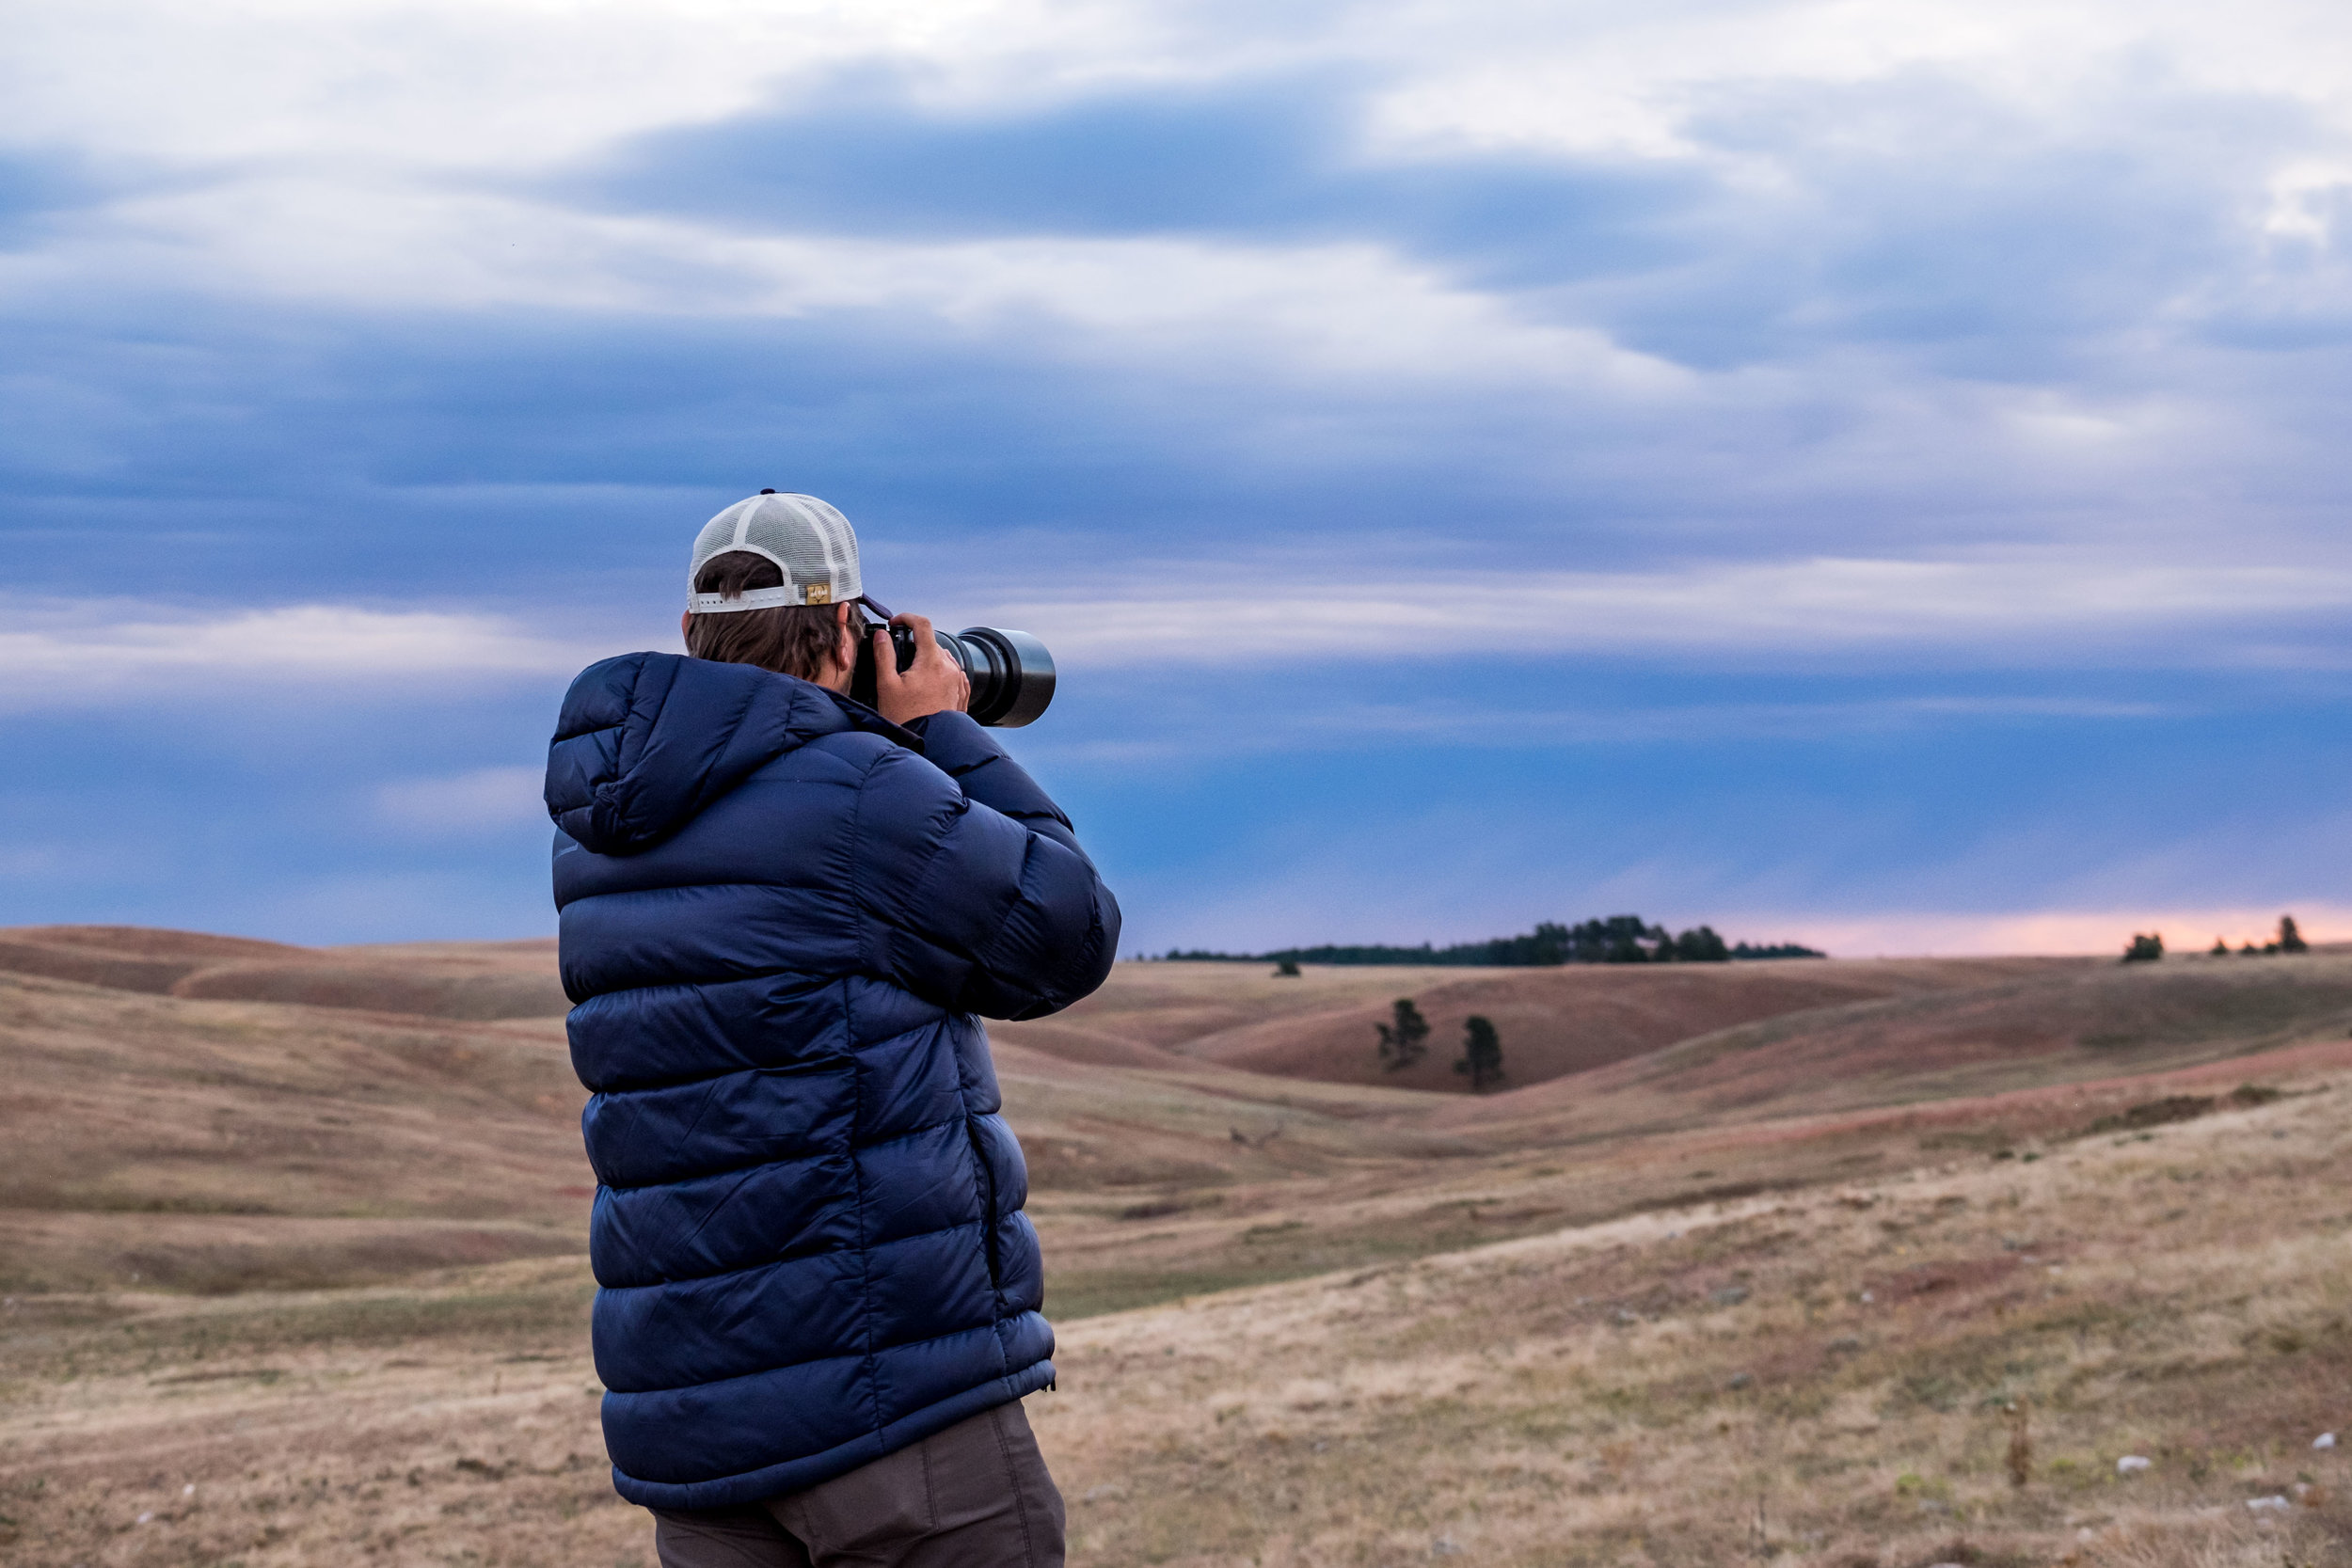 Jonathan photographing Wind Cave National Park in South Dakota.